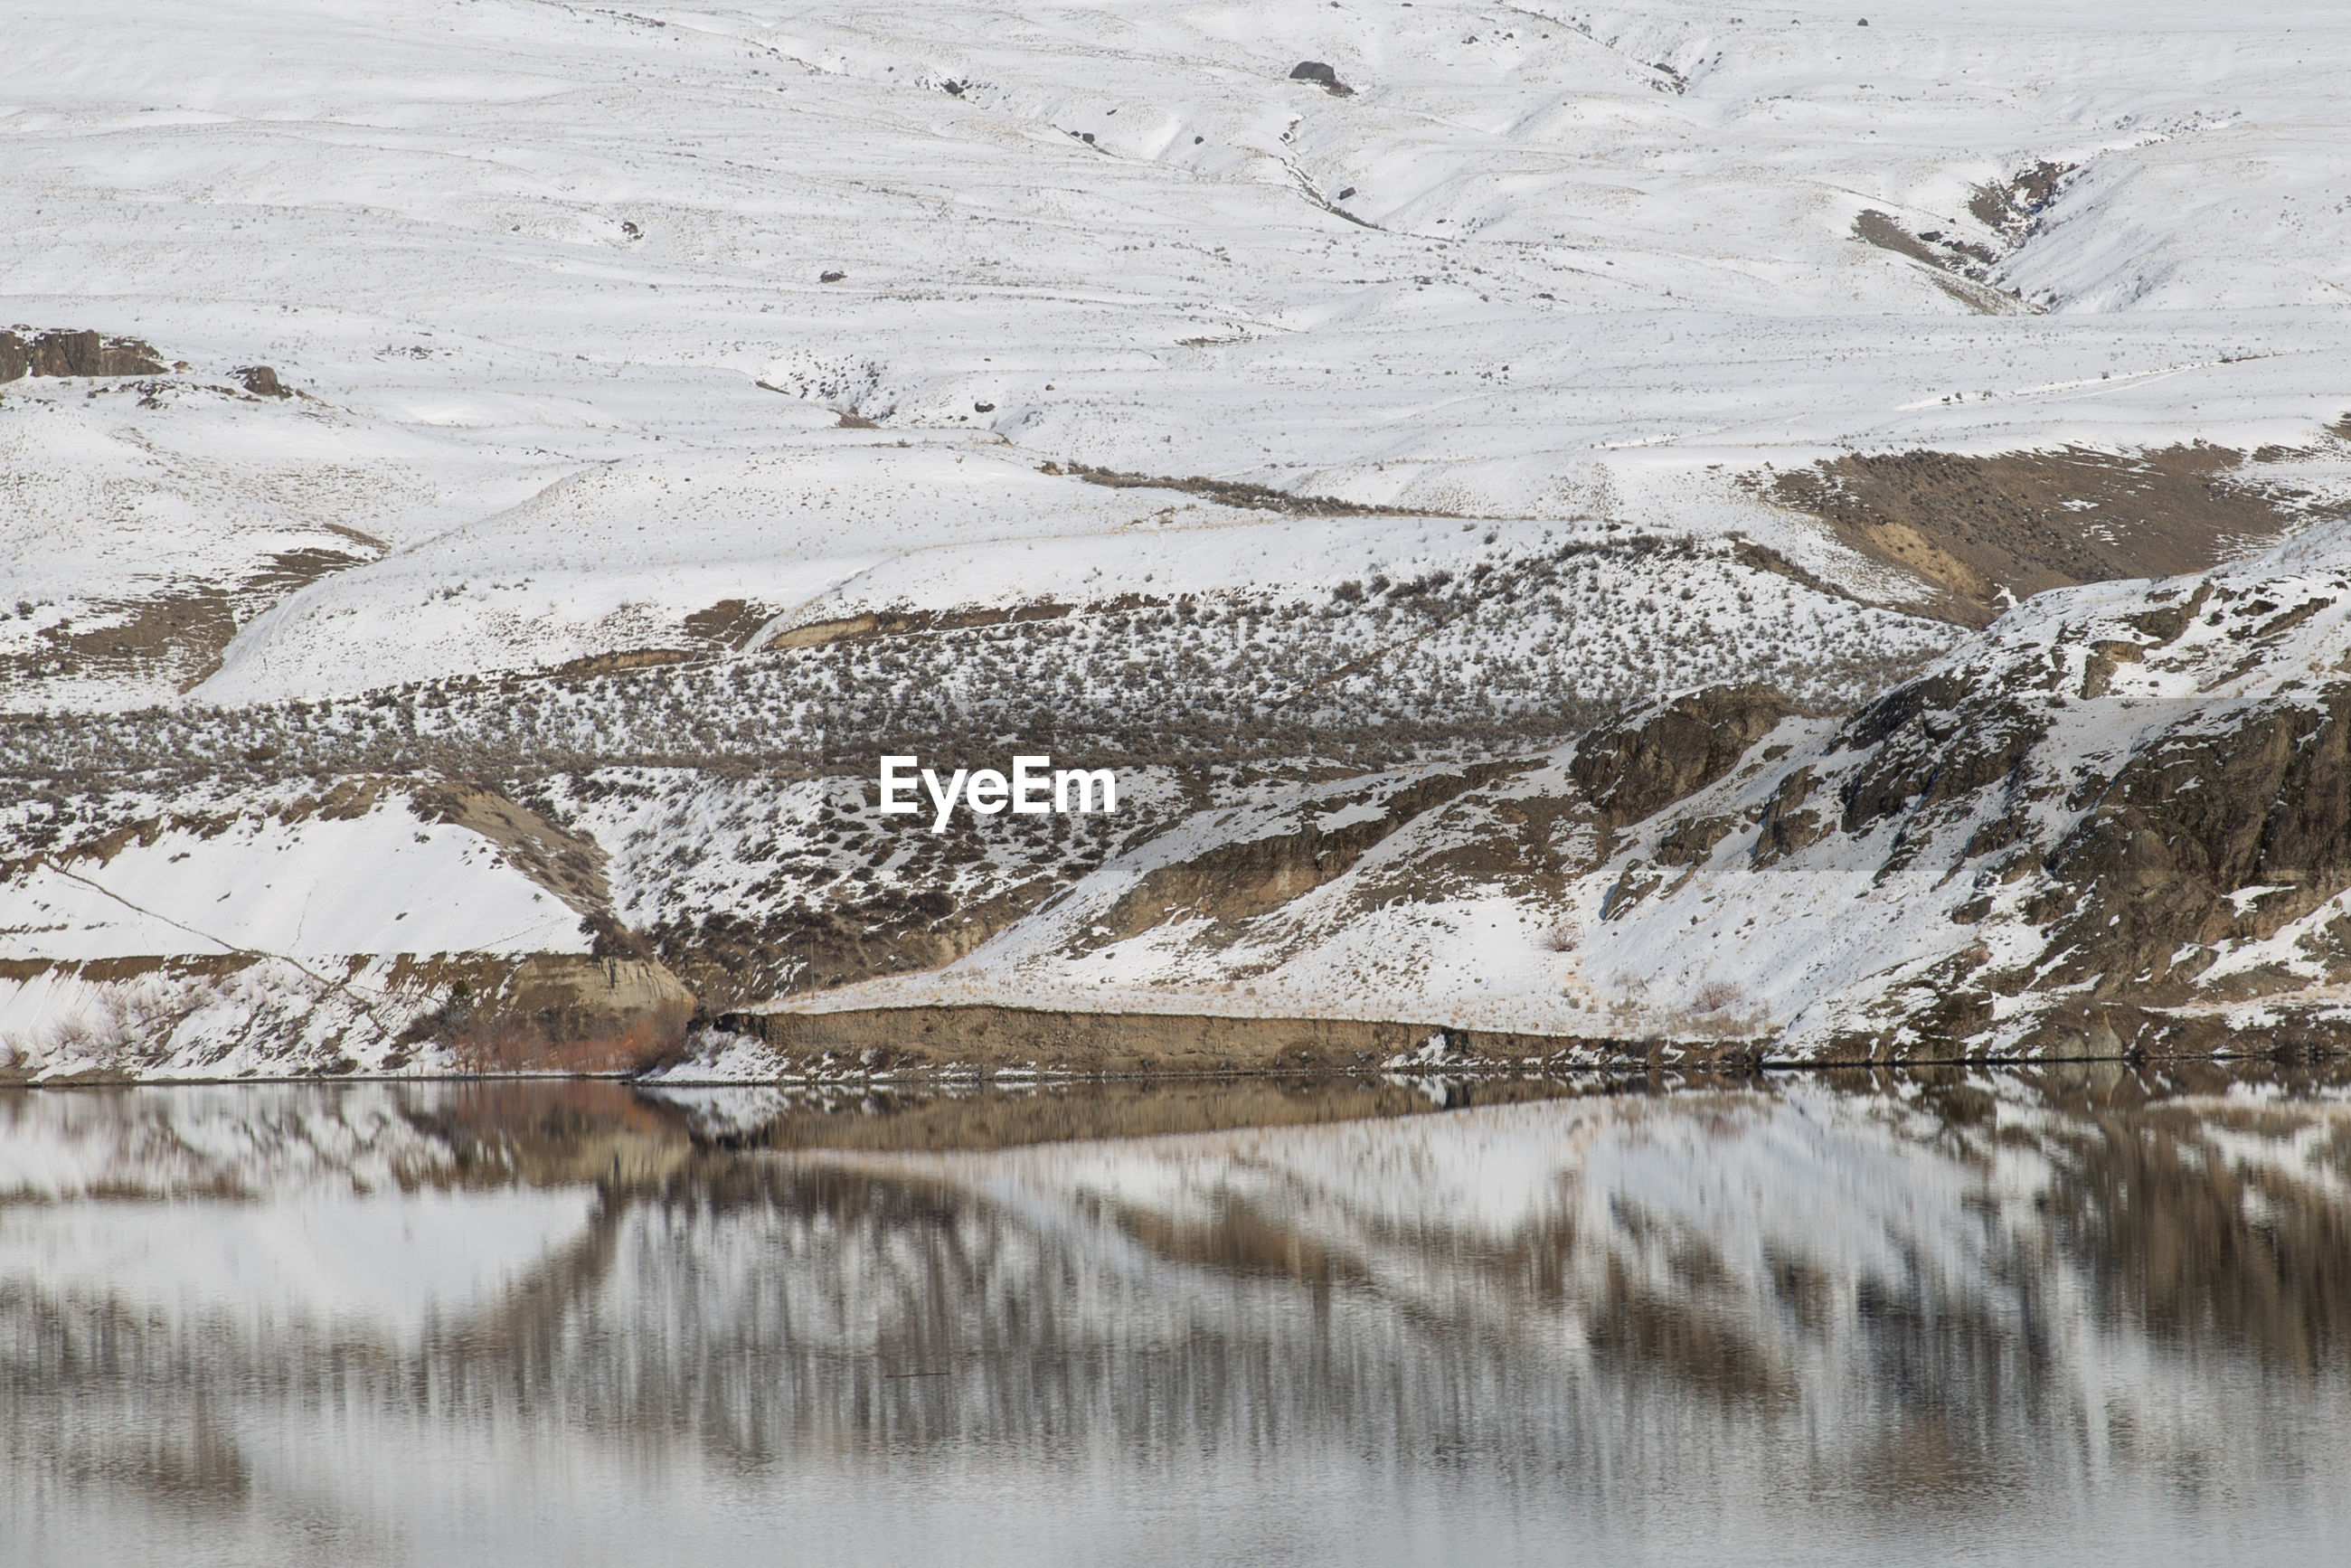 SCENIC VIEW OF FROZEN LAKE